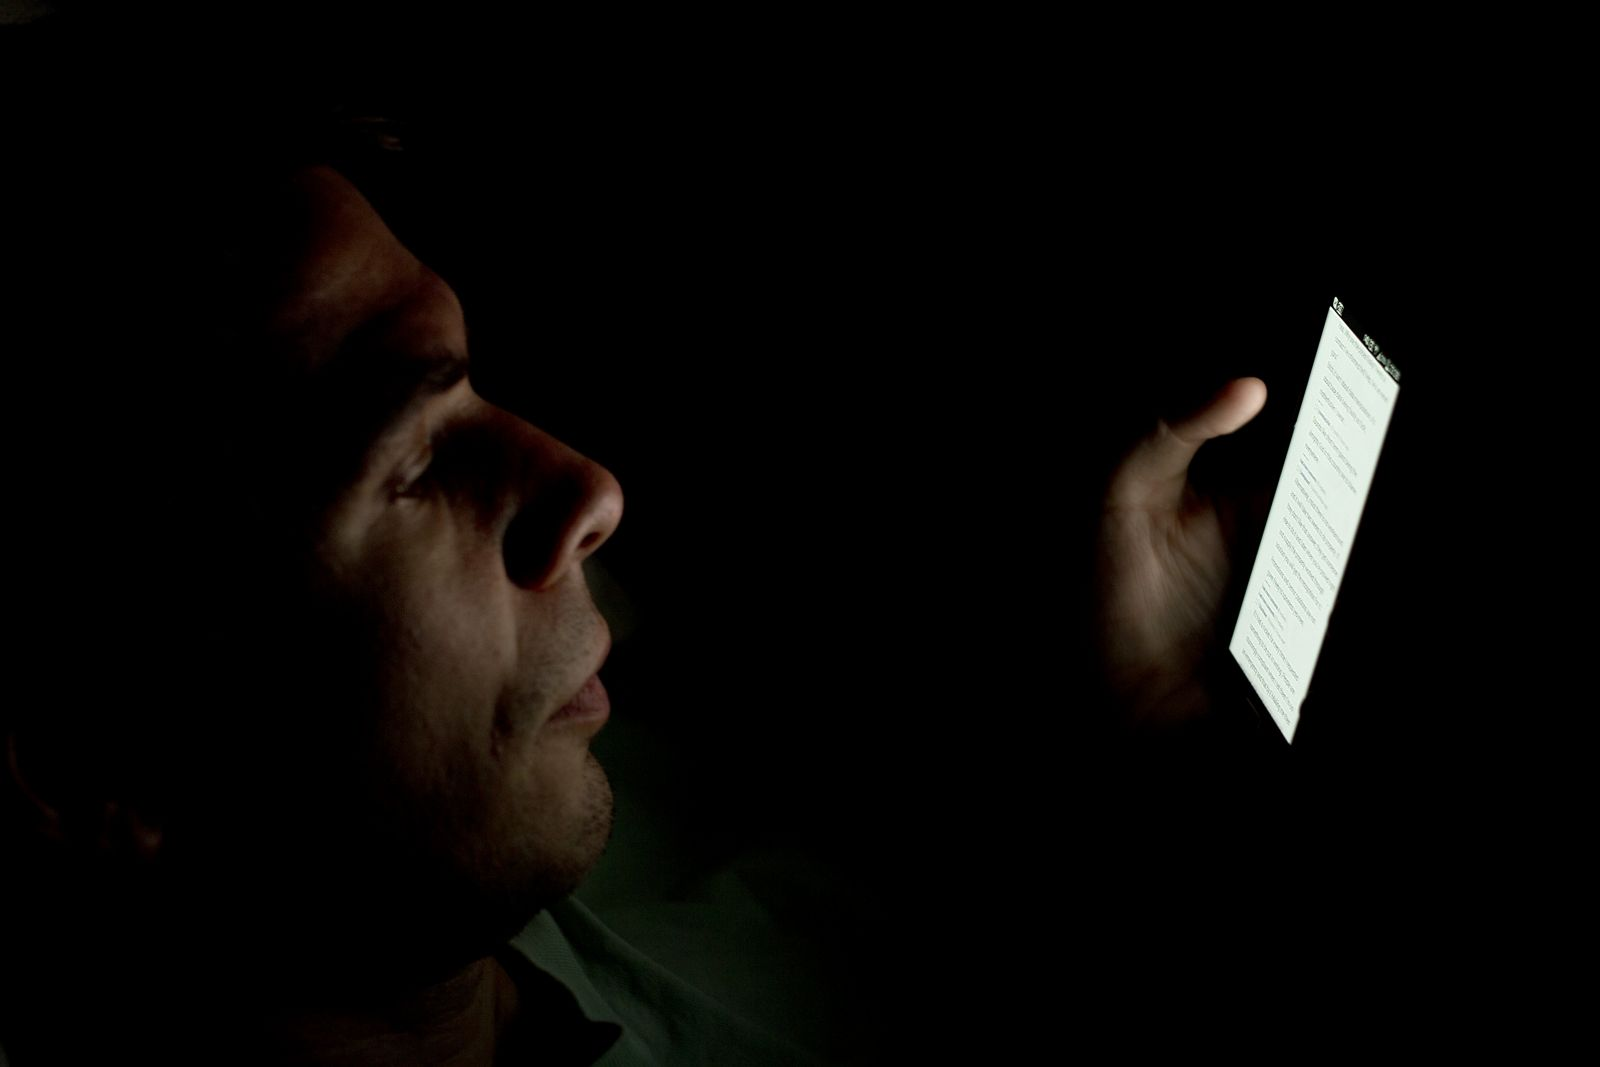 Person_looking_at_smartphone_in_the_dark_(2).jpg